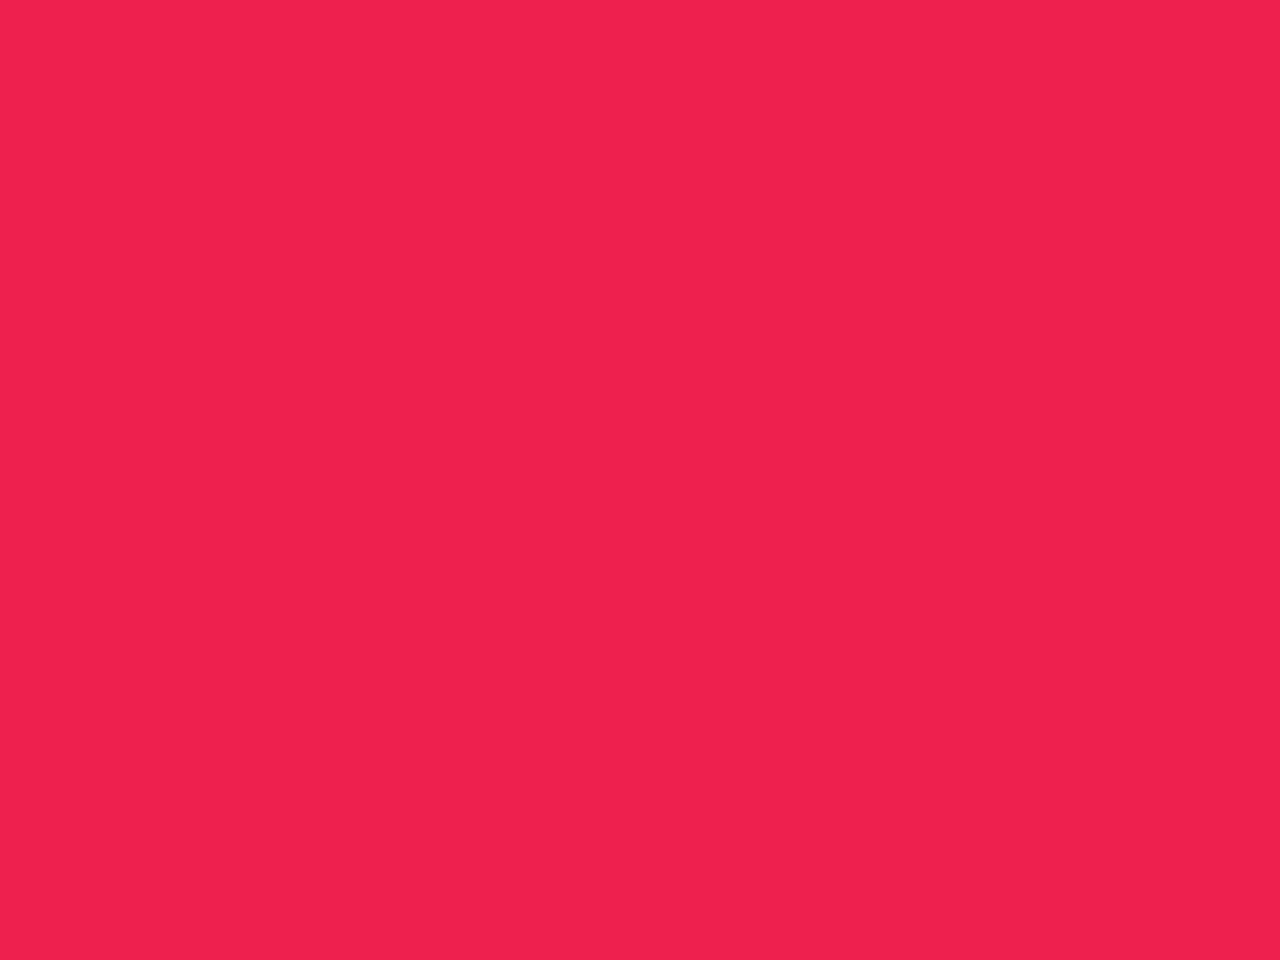 1280x960 Red Crayola Solid Color Background